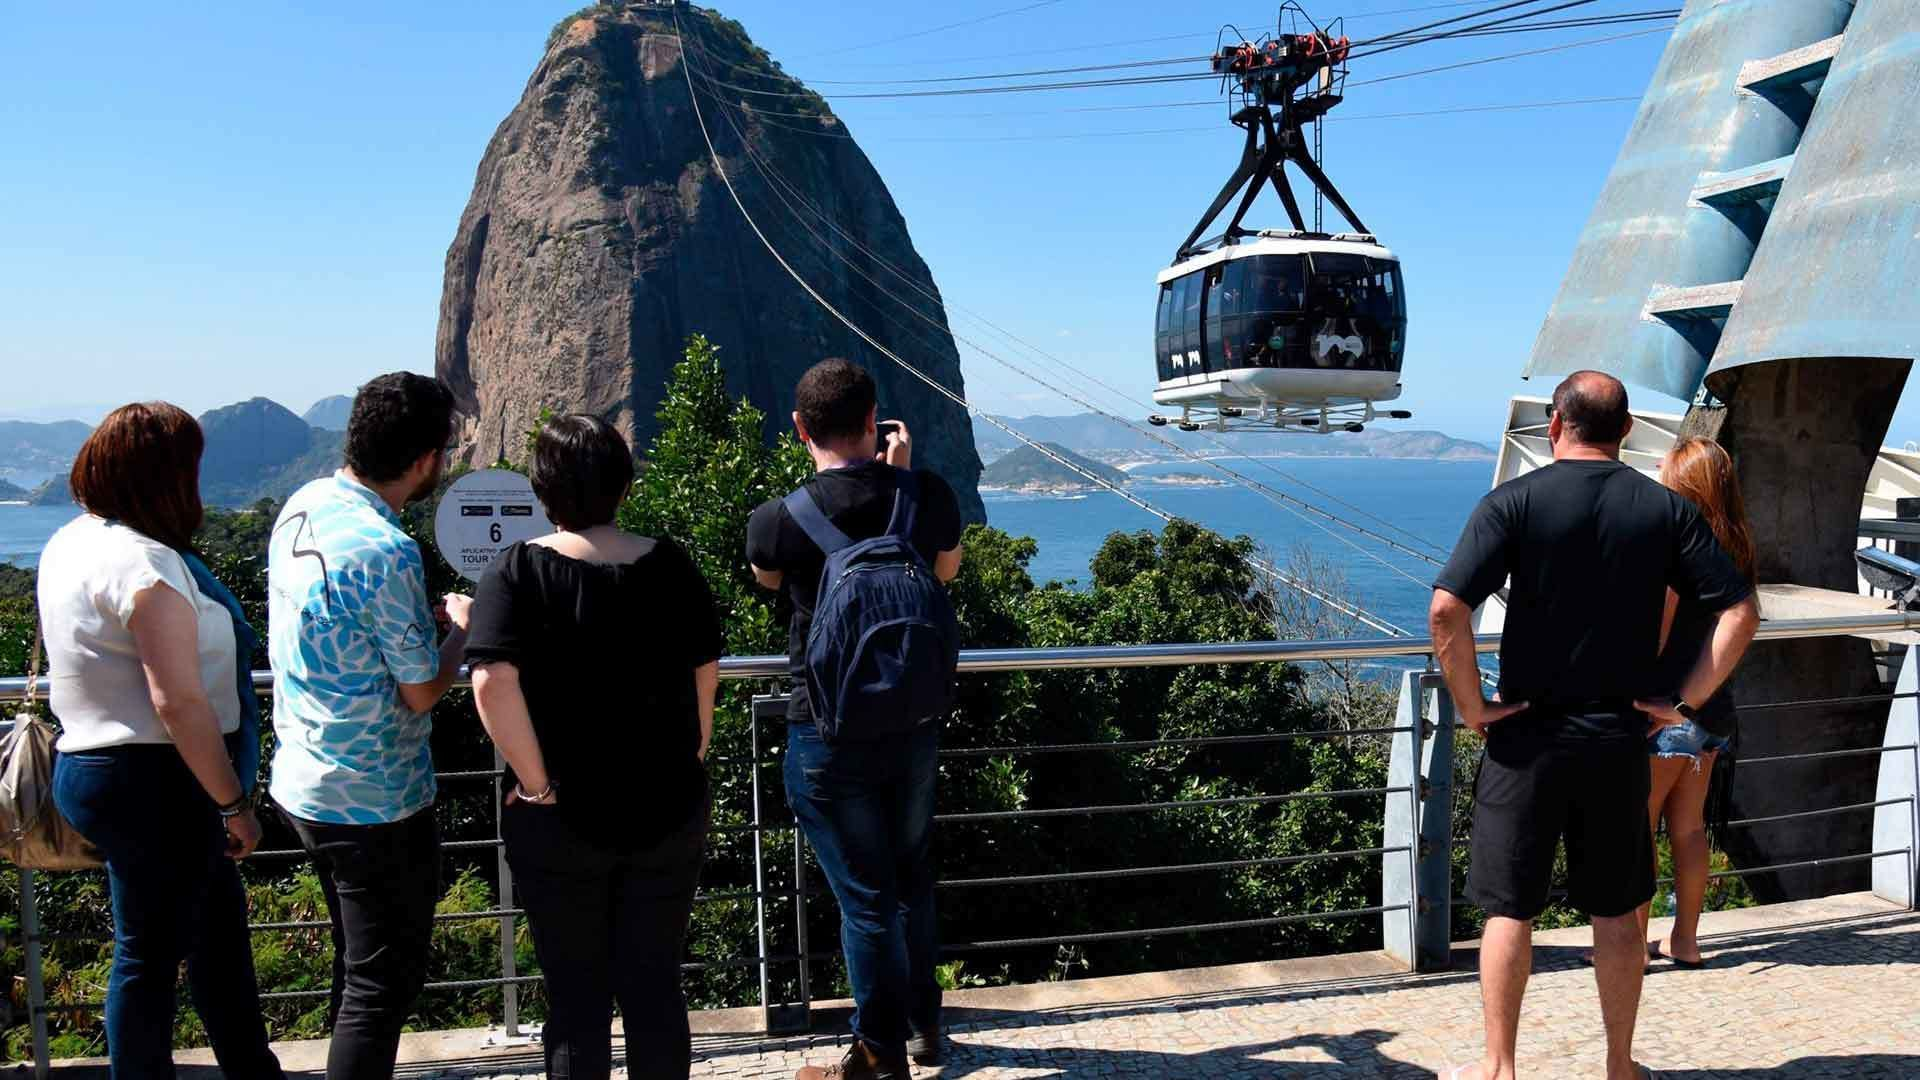 Tourists wait in line for Gondola to Sugar Loaf Mountain